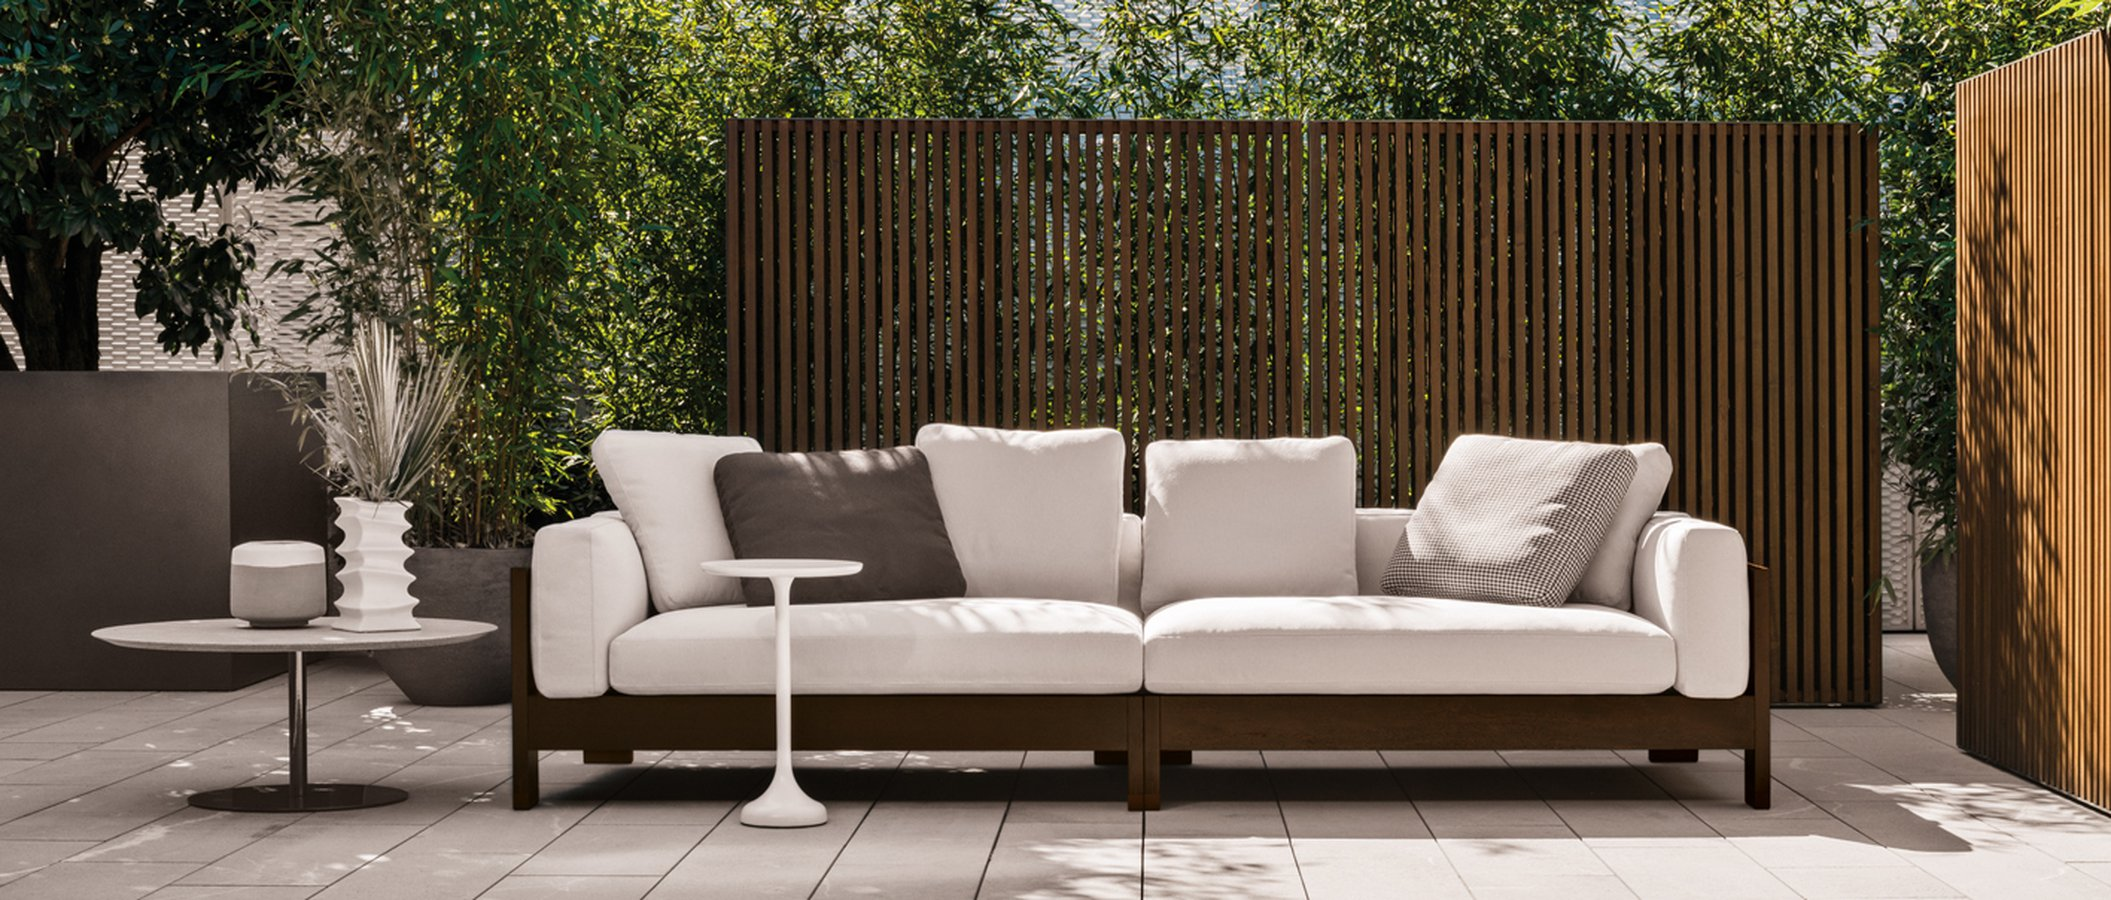 Alison iroko outdoor sofa by minotti ecc - Naturewood furniture for both indoor and outdoor sitting ...